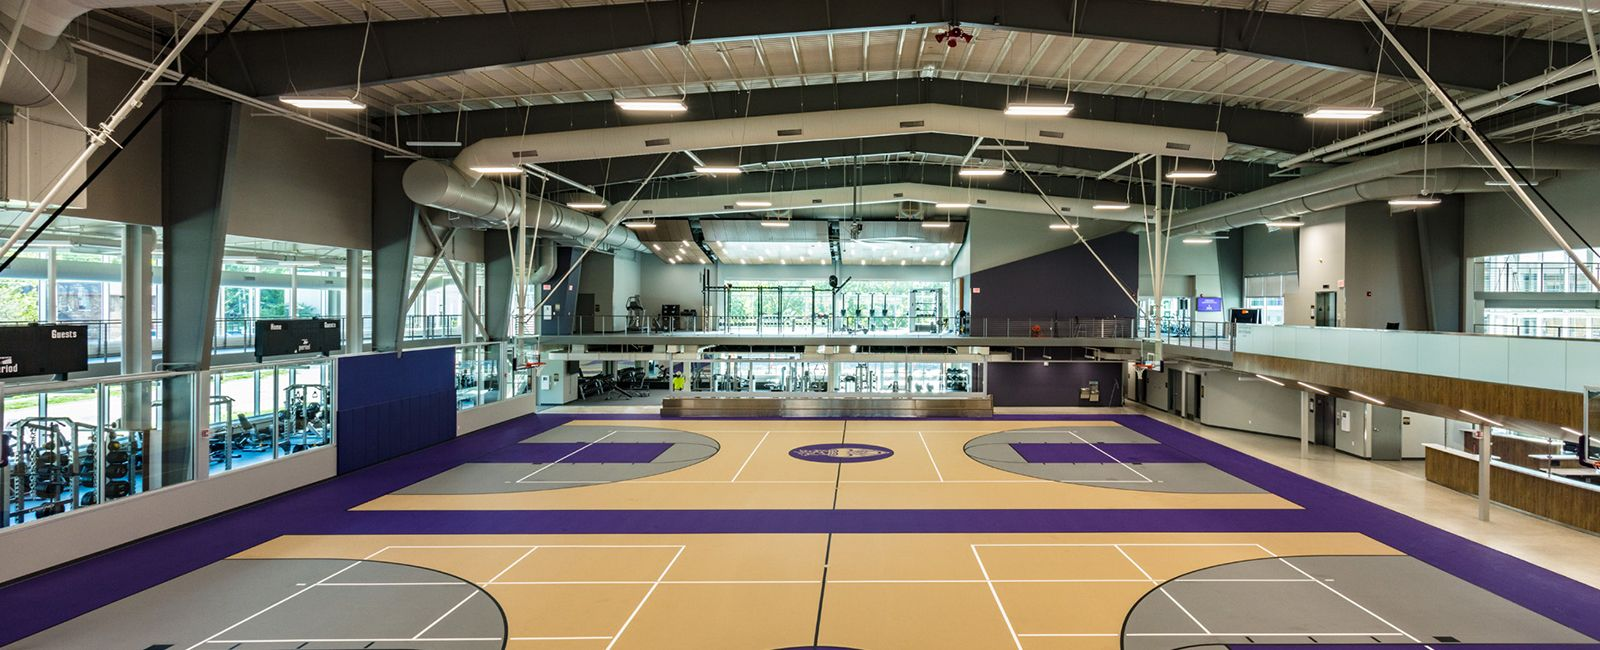 Project - Palmer College - R. Richard Bittner Athletic and Recreation Center - 2